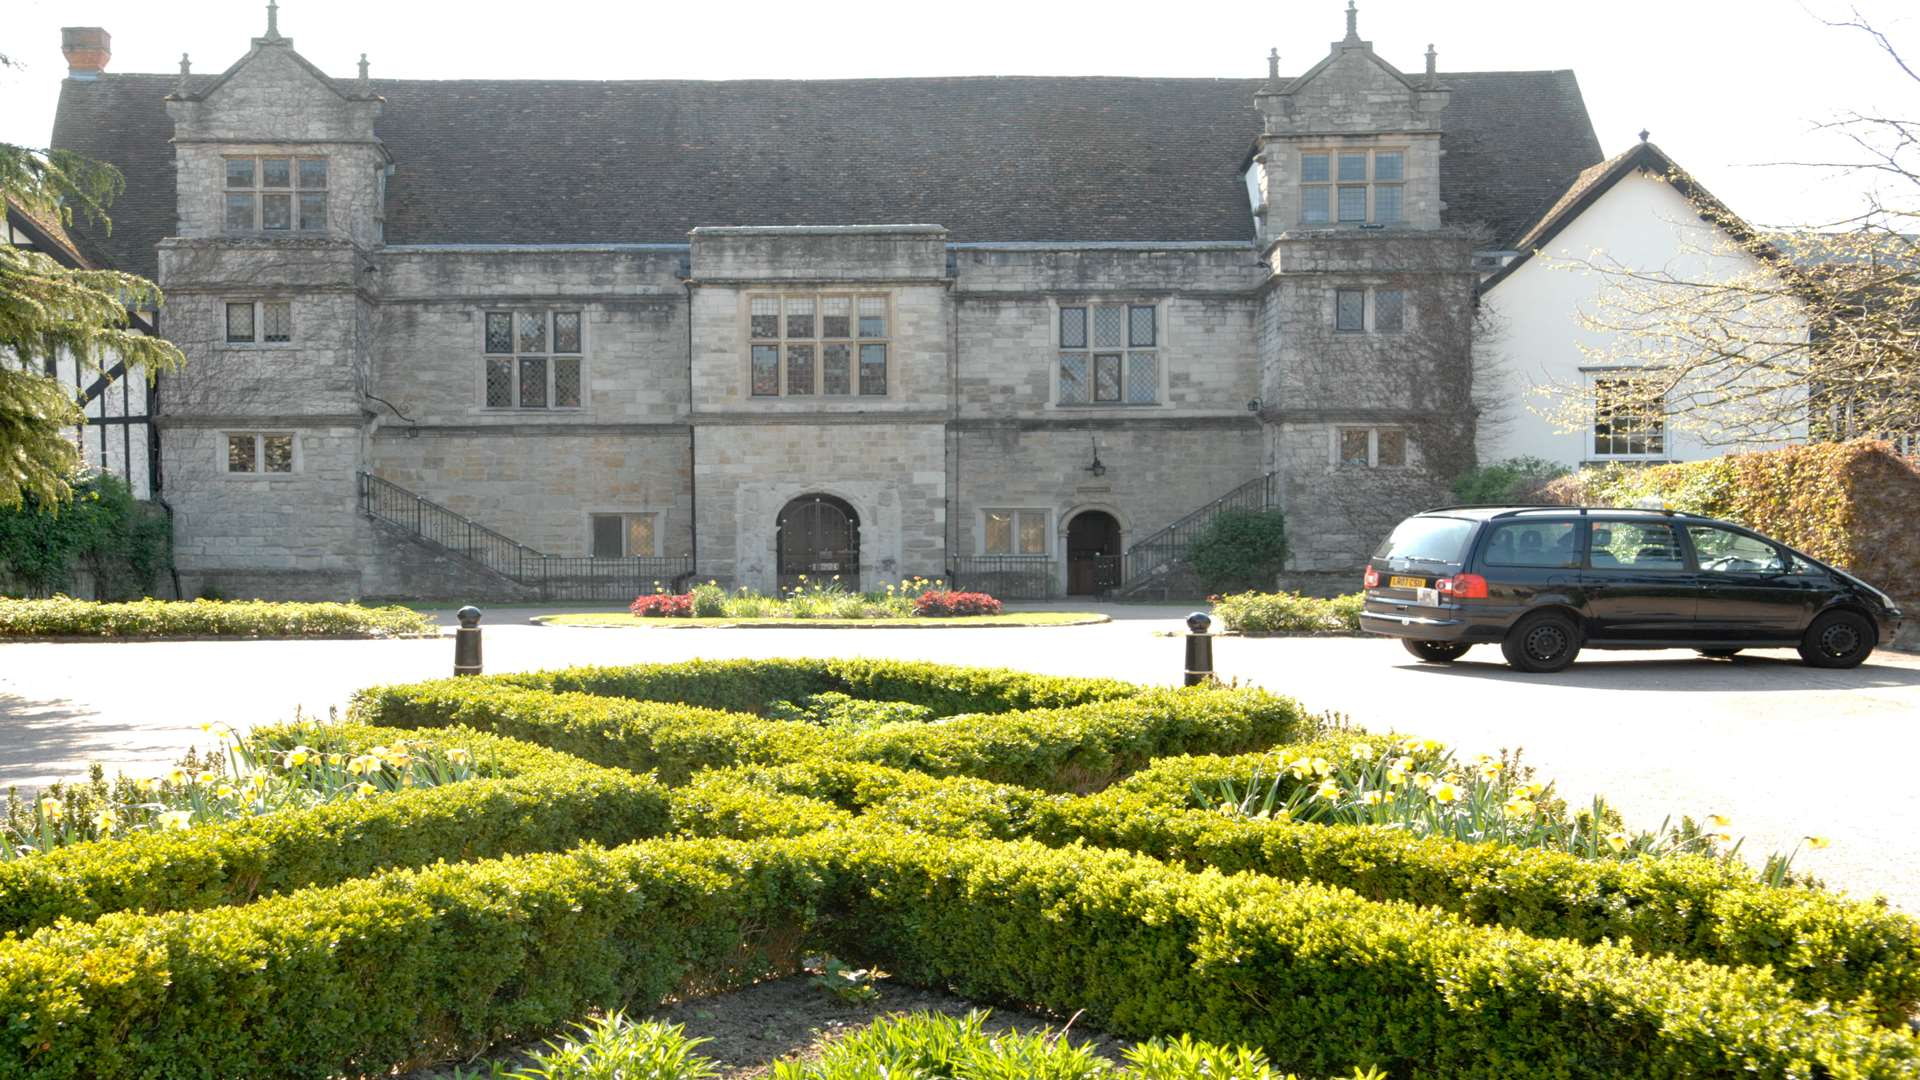 Archbishop's Palace in Maidstone